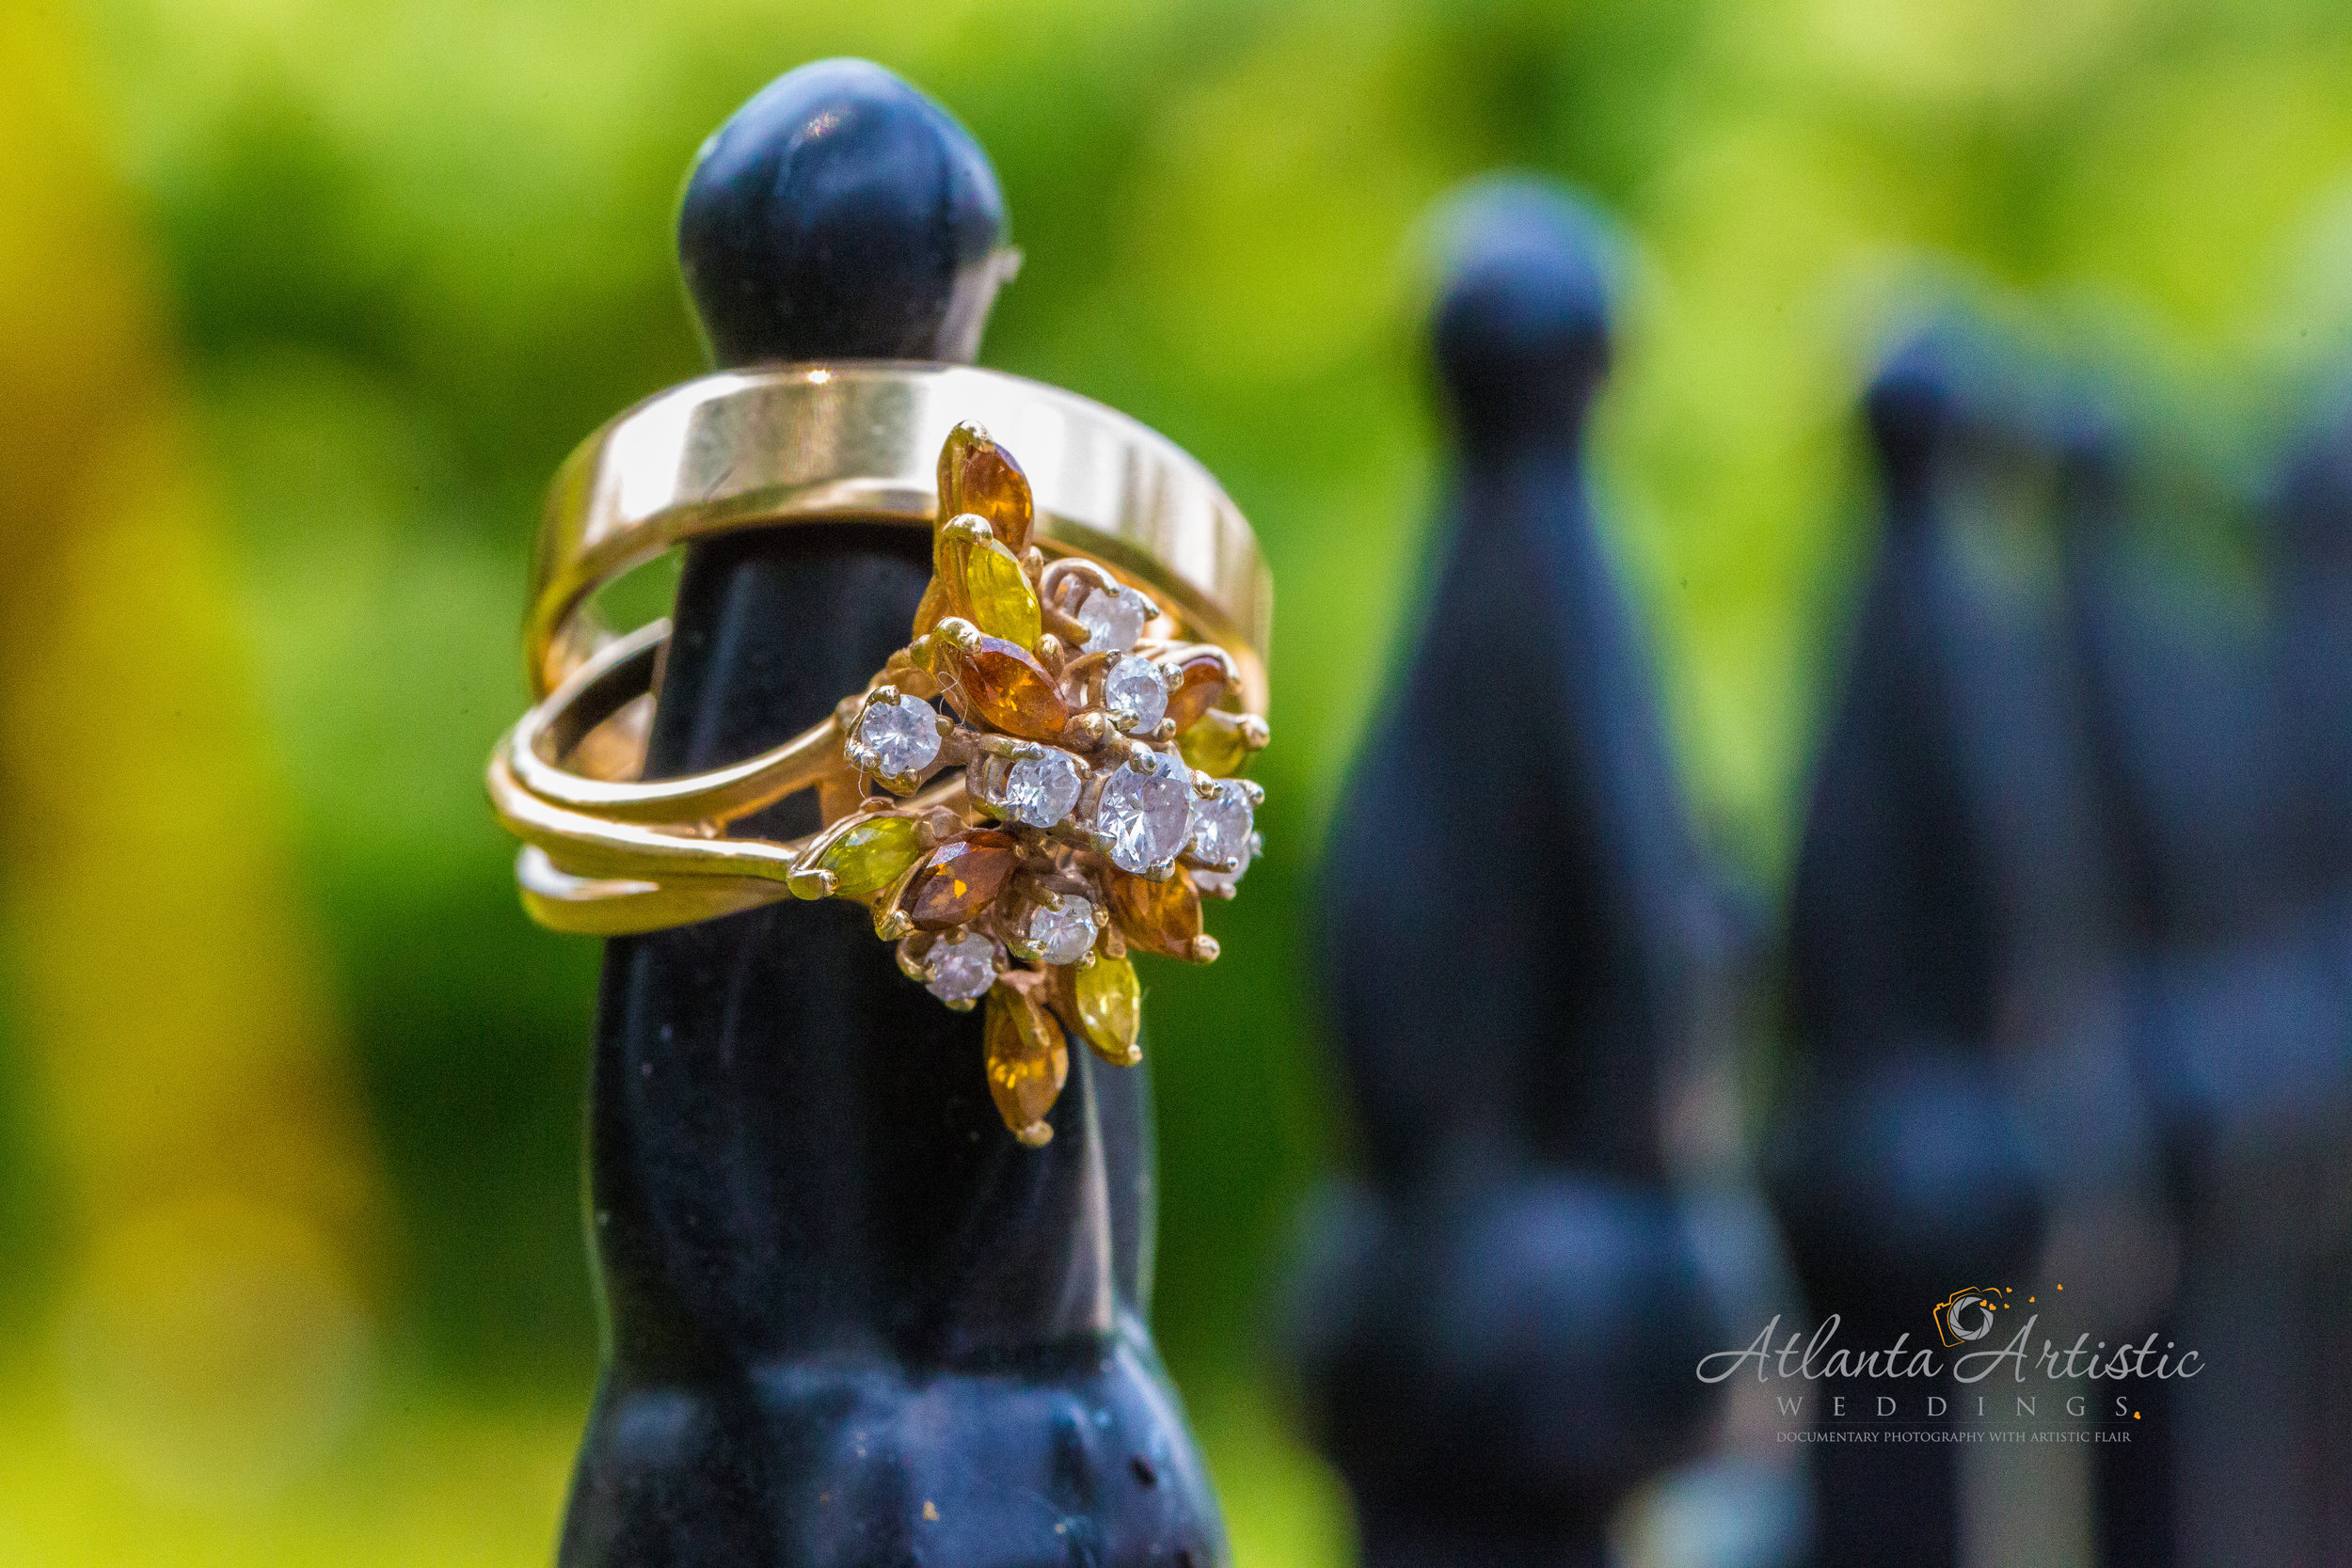 Atlanta Wedding Photographers use Wrought Iron Fence for displaying wedding rings